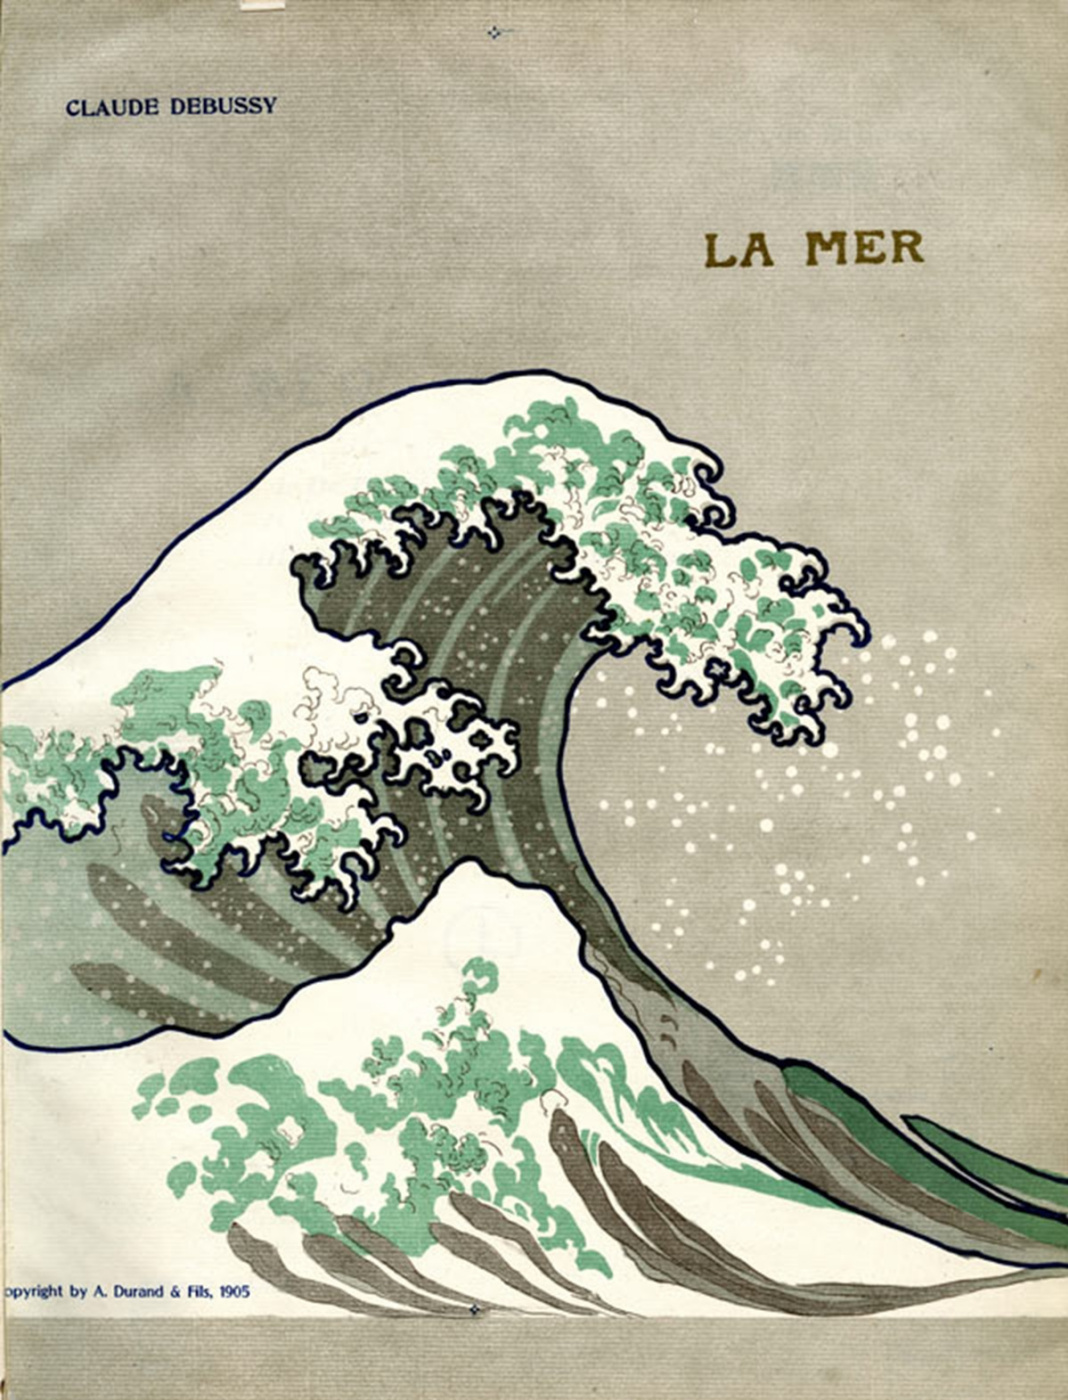 Cover of the 1905 first edition of Debussy's La Mer published by A. Durand & Fils. Image courtesy of Sibley Music Library, Eastman School of Music